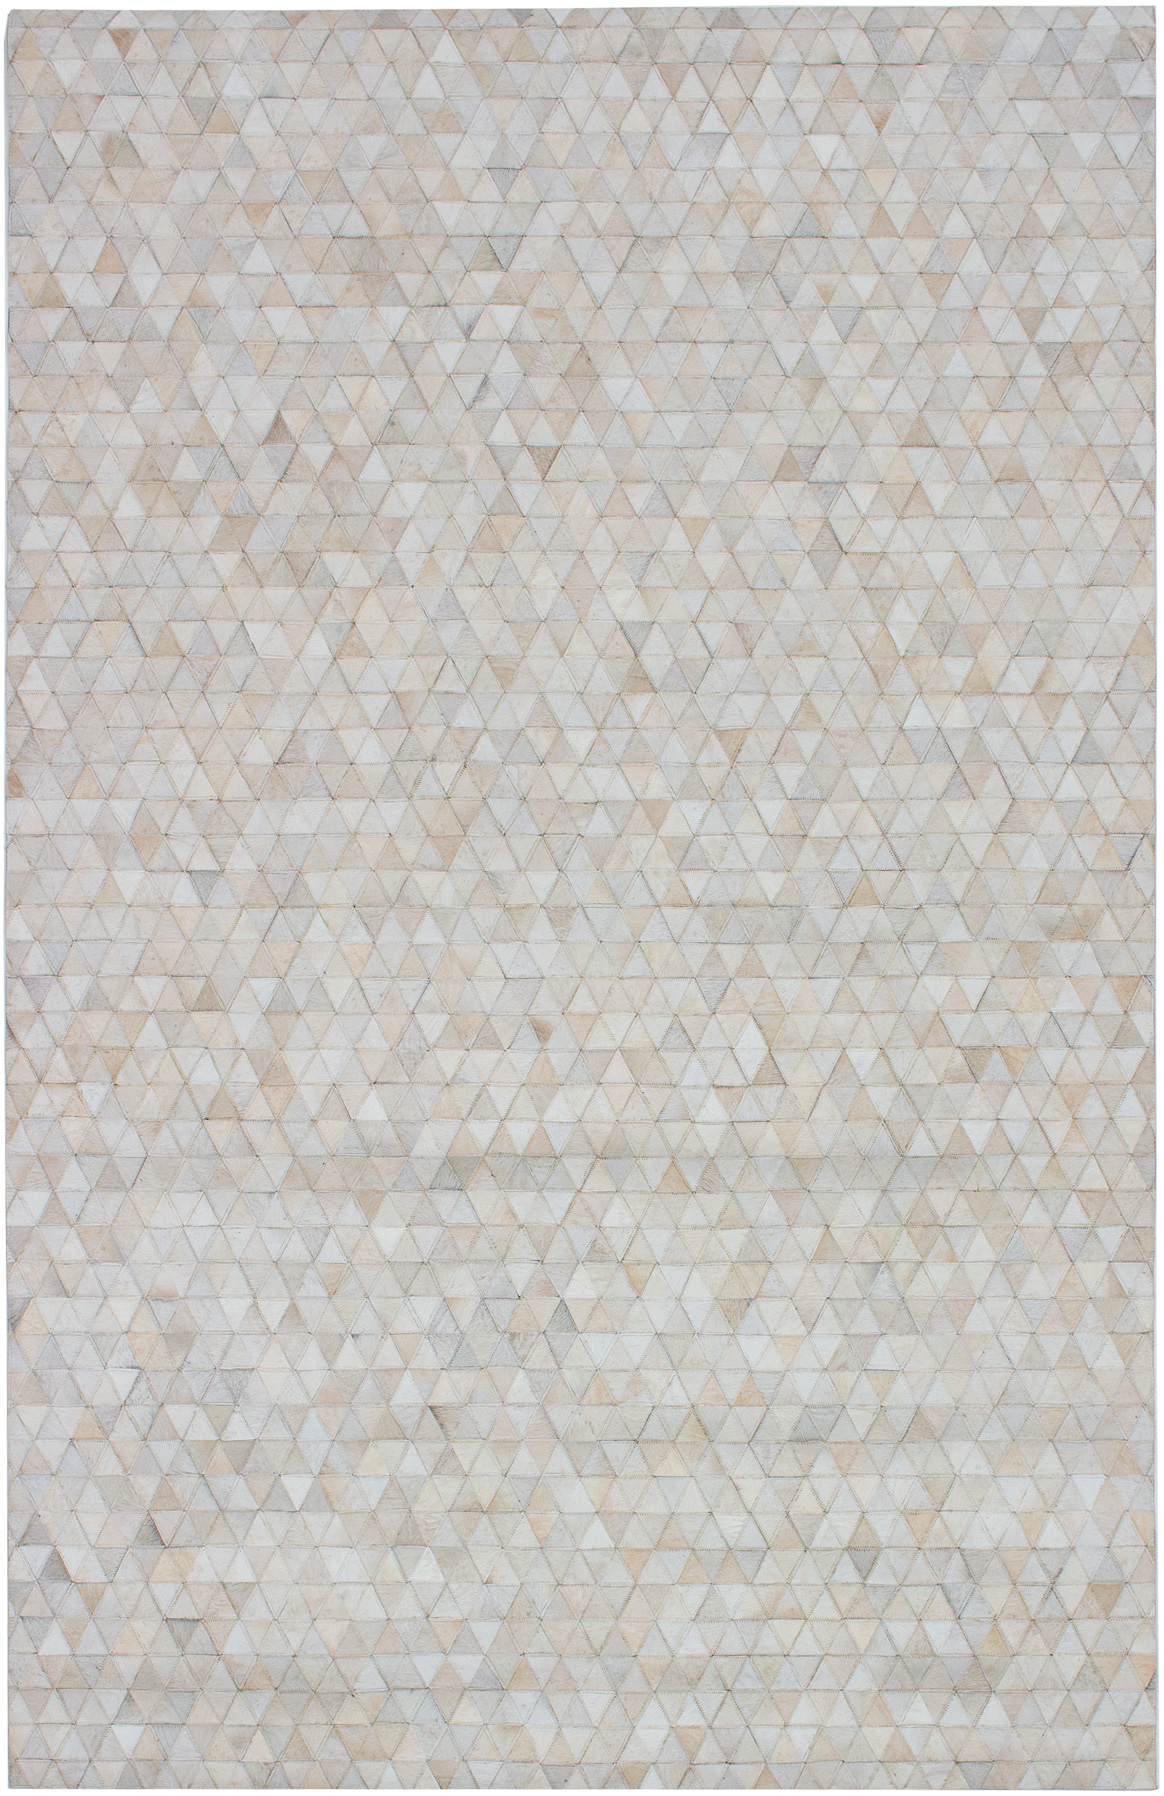 """Handmade Cowhide Patchwork Ivory Leather Rug 5'0"""" x 8'0"""" Size: 5'0"""" x 8'0"""""""